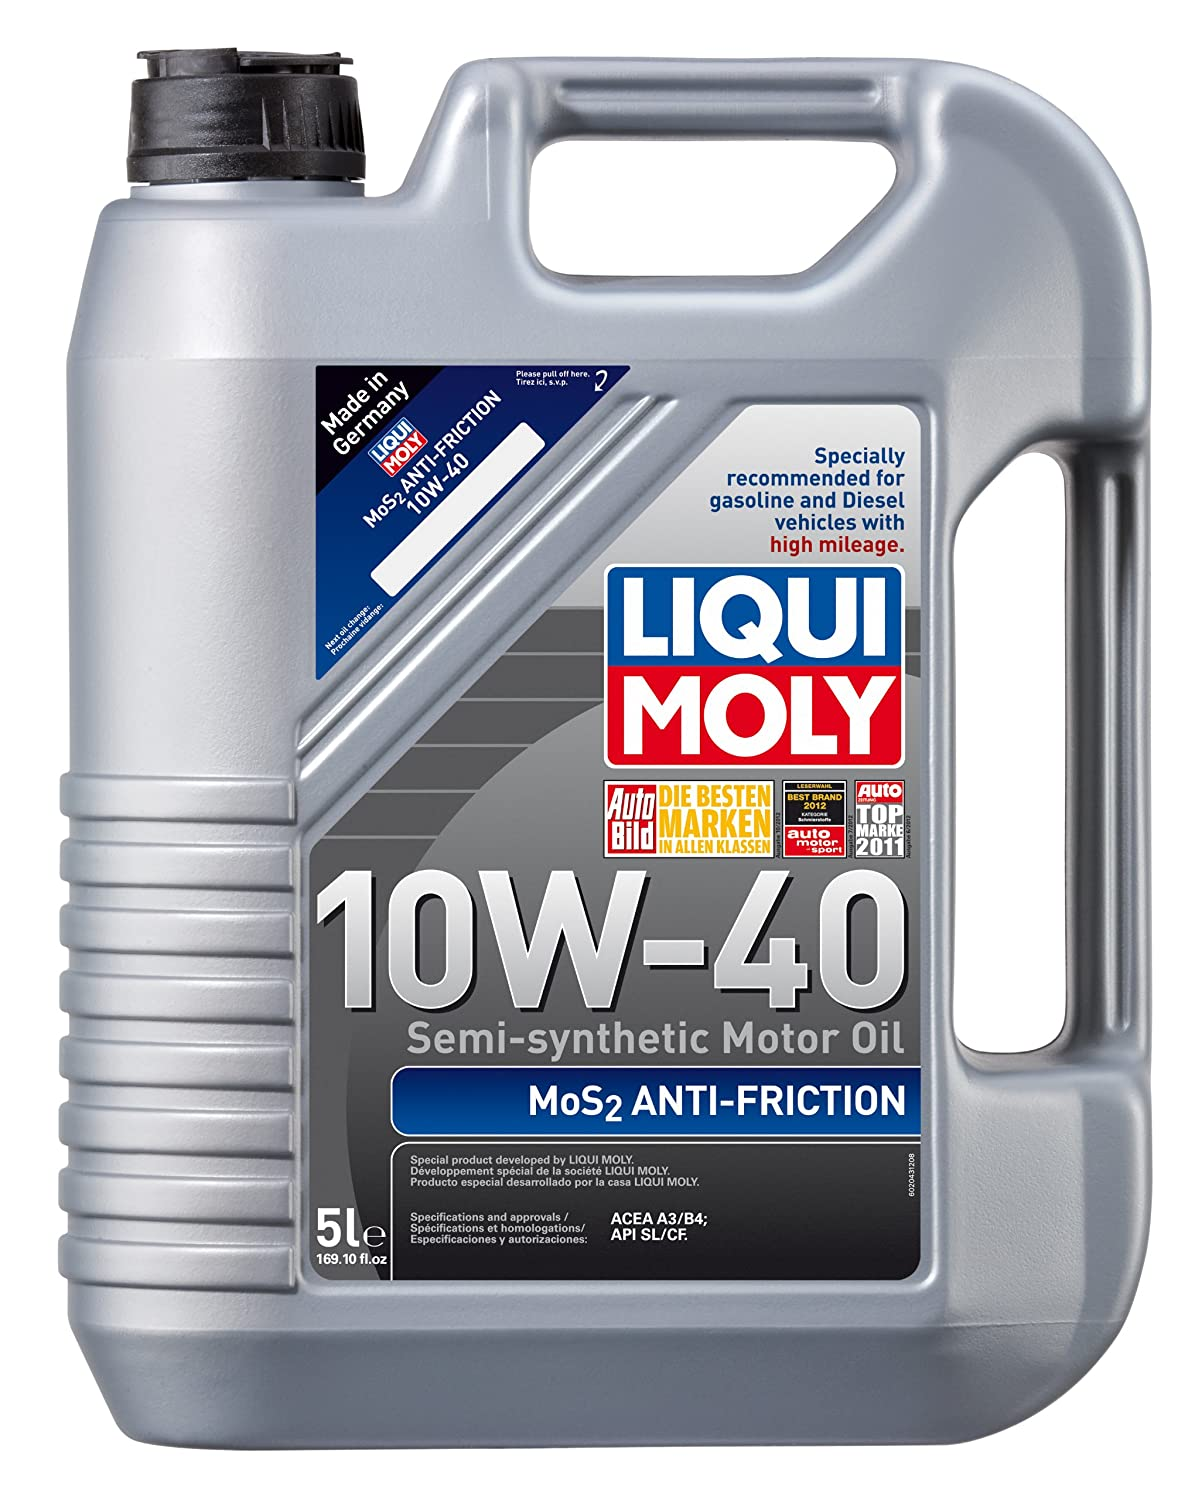 Bumping an old thread but is anyone using the liquimoly 10w 40 with mos2 along with the moly additive it s got a high zddp content